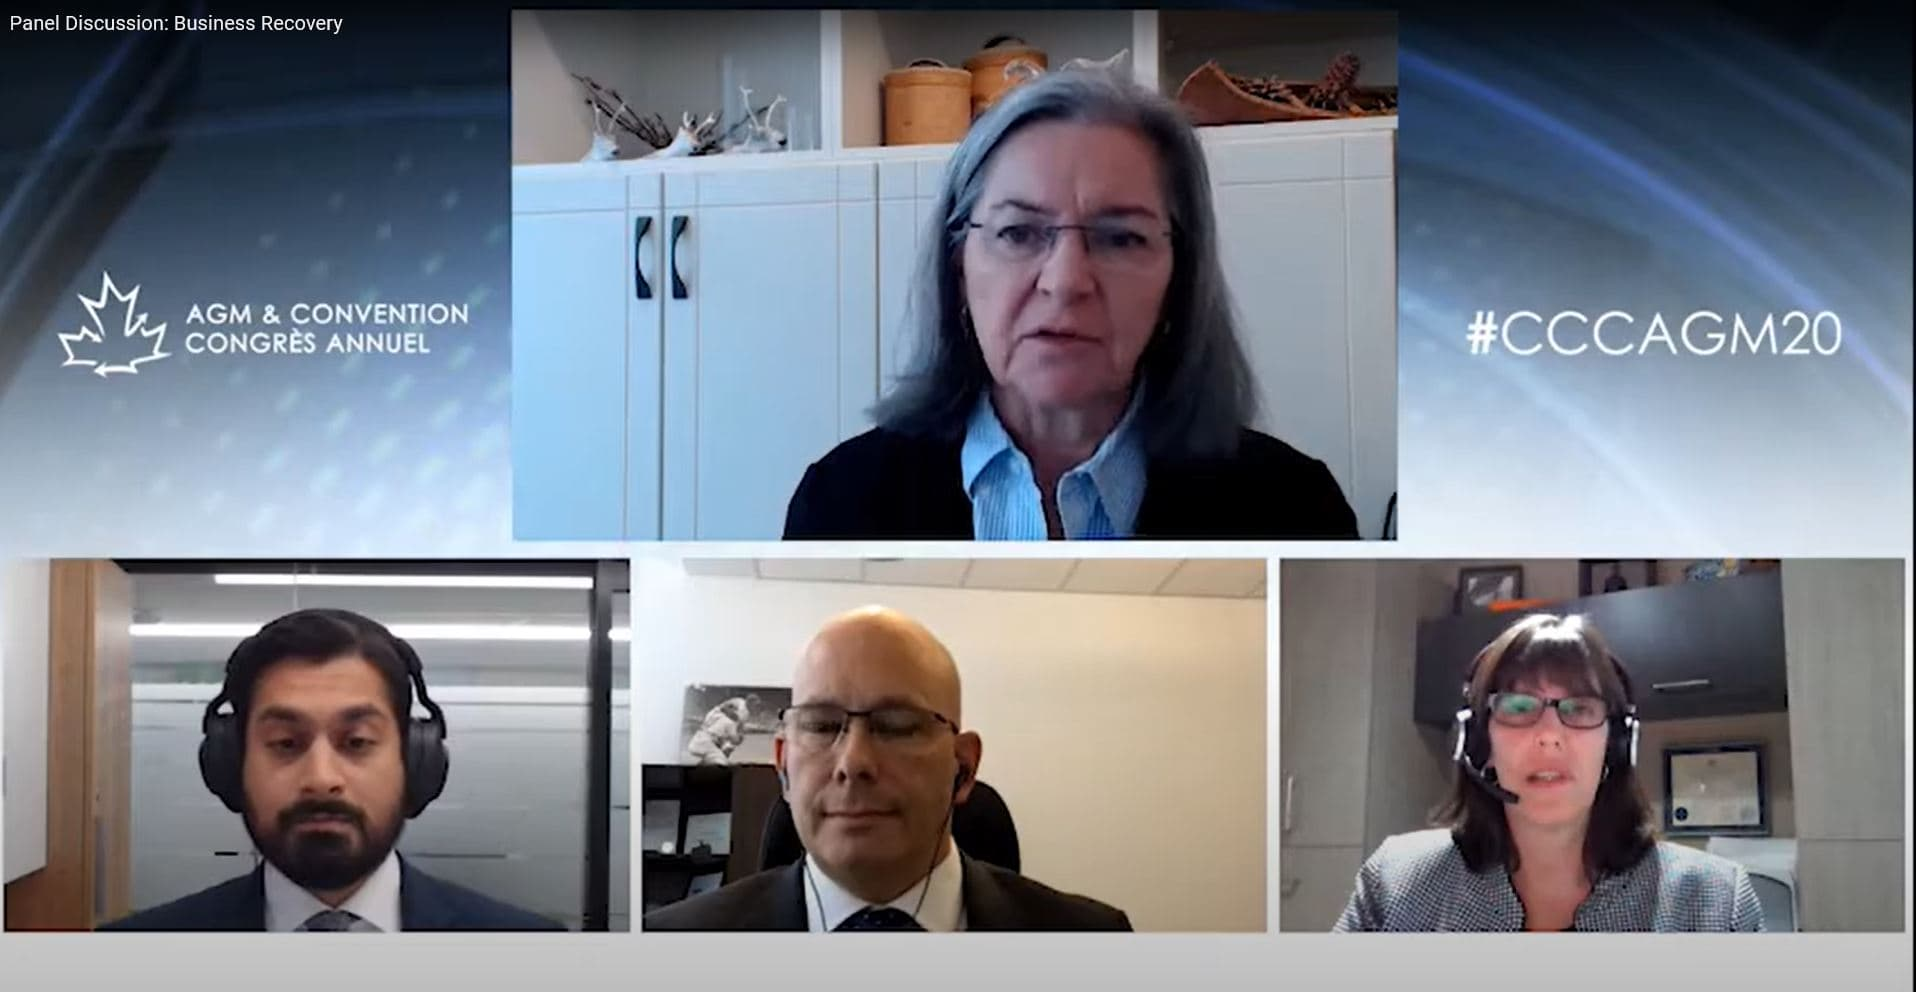 Martha Hall Findlay, Chief Sustainability Officer, Suncor, Todd Winterhalt, Senior Vice-President, Communications and Corporate Strategy, EDC and Janet Drysdale, Vice-President Financial Planning, CN Rail, on the virtual Business Recovery Panel at the 2020 Canadian Chamber of Commerce AGM.